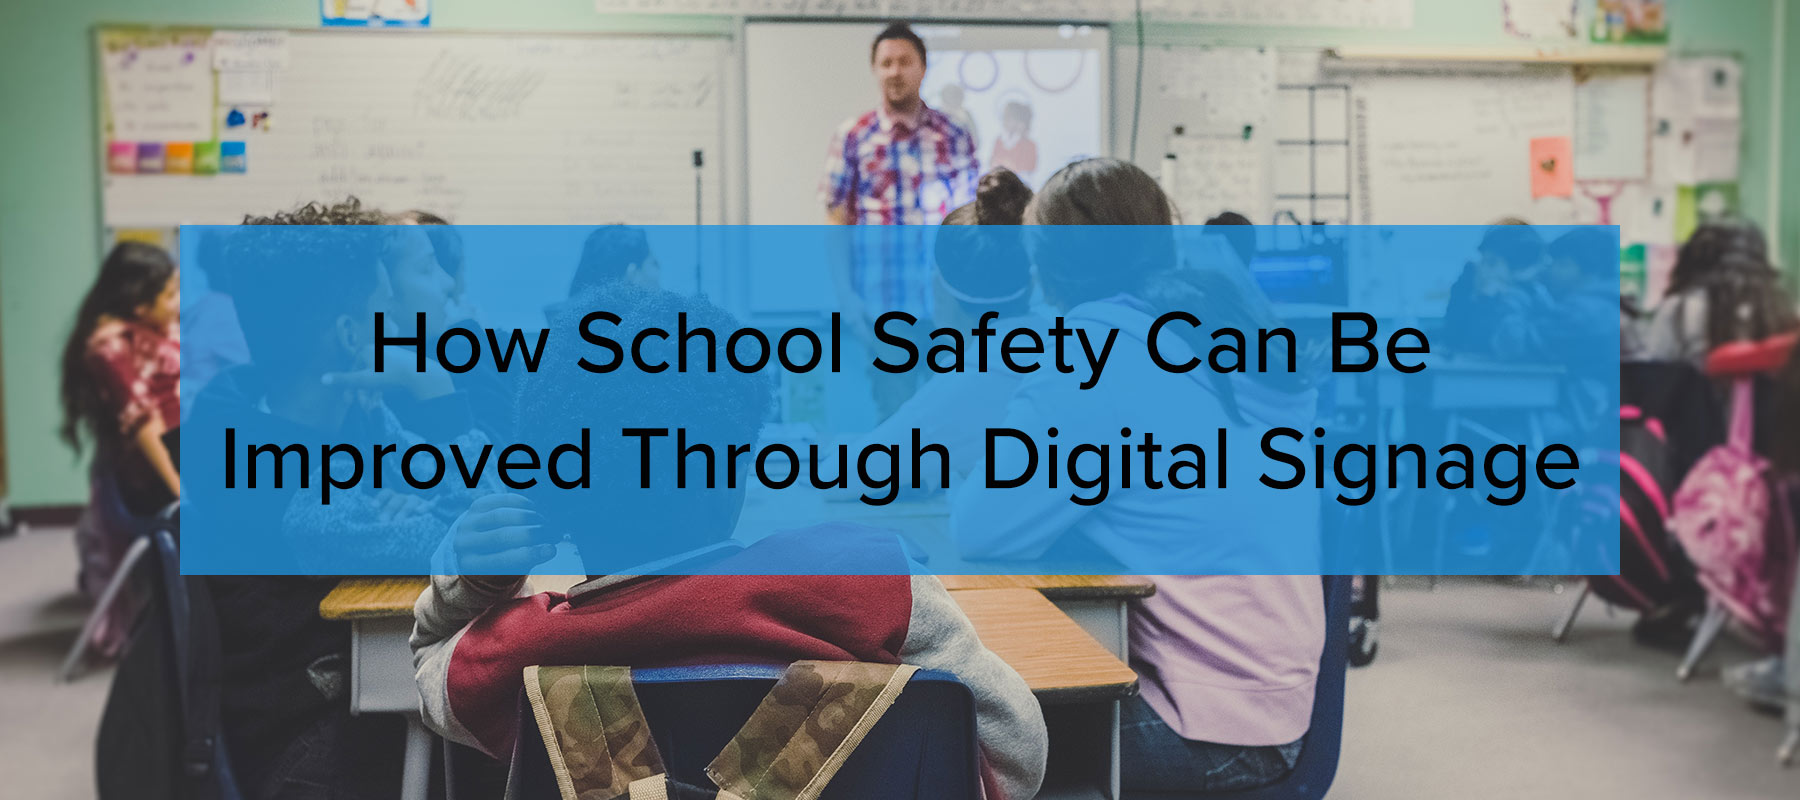 How School Safety Can Be Improved Through Digital Signage